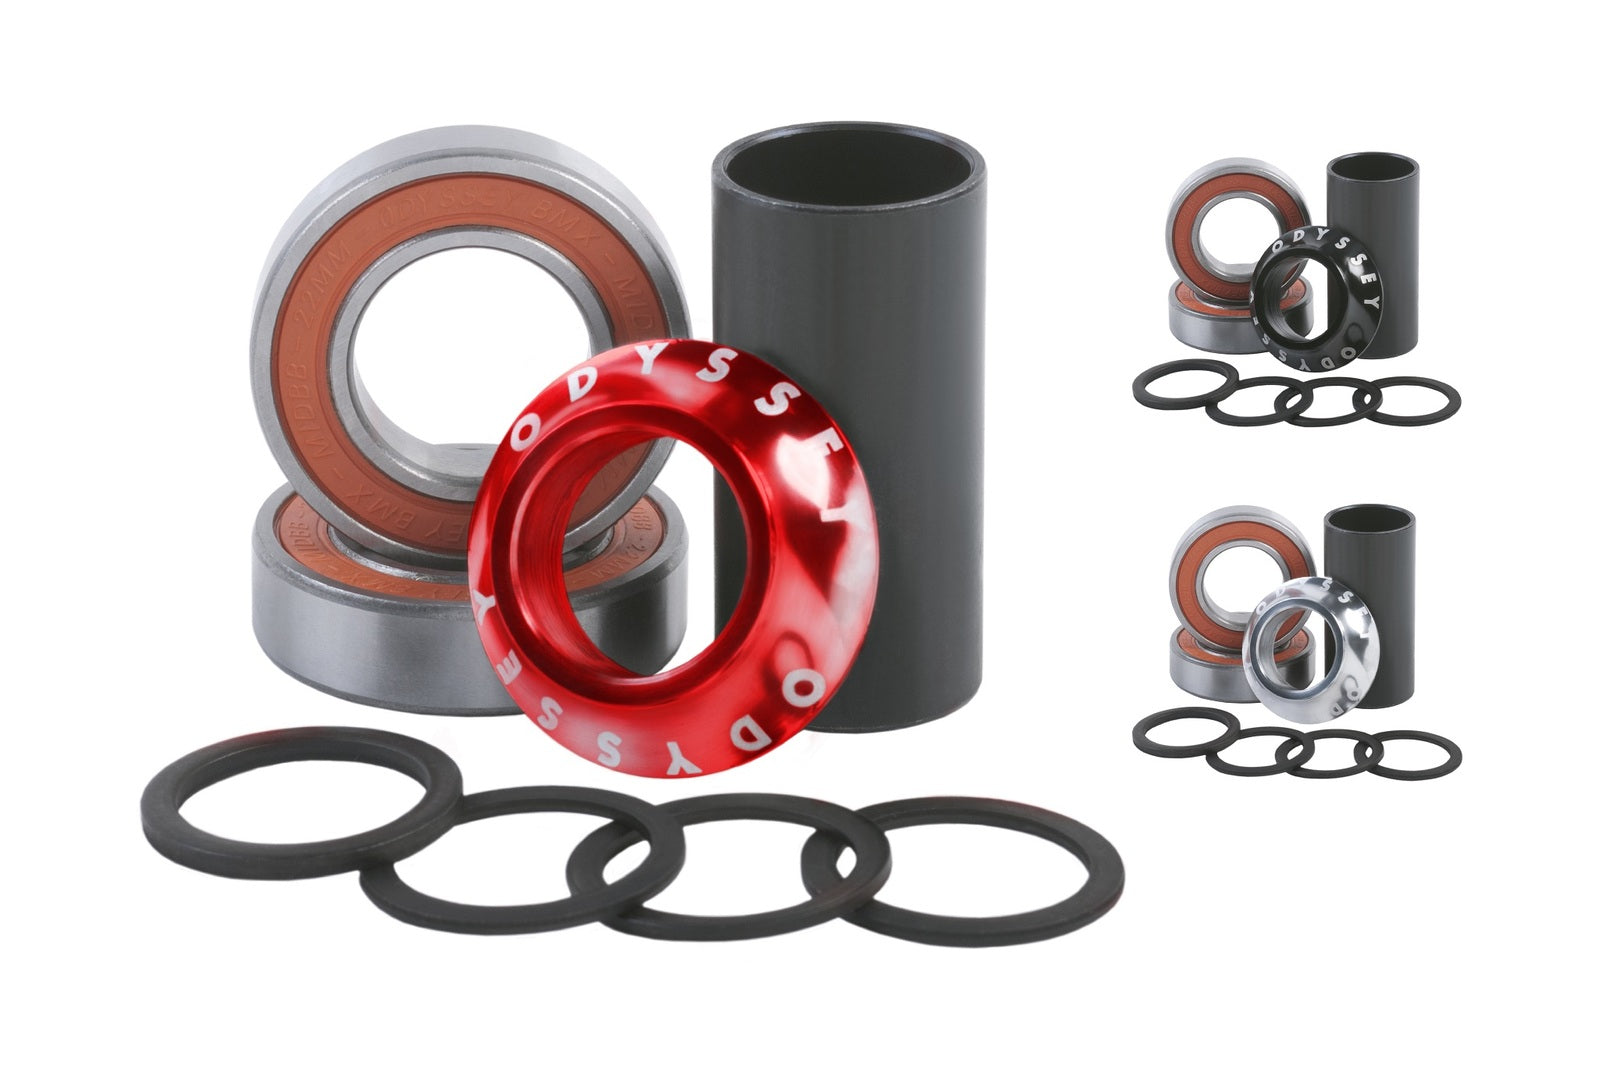 ODYSSEY MID 19MM BOTTOM BRACKET KIT £23.99